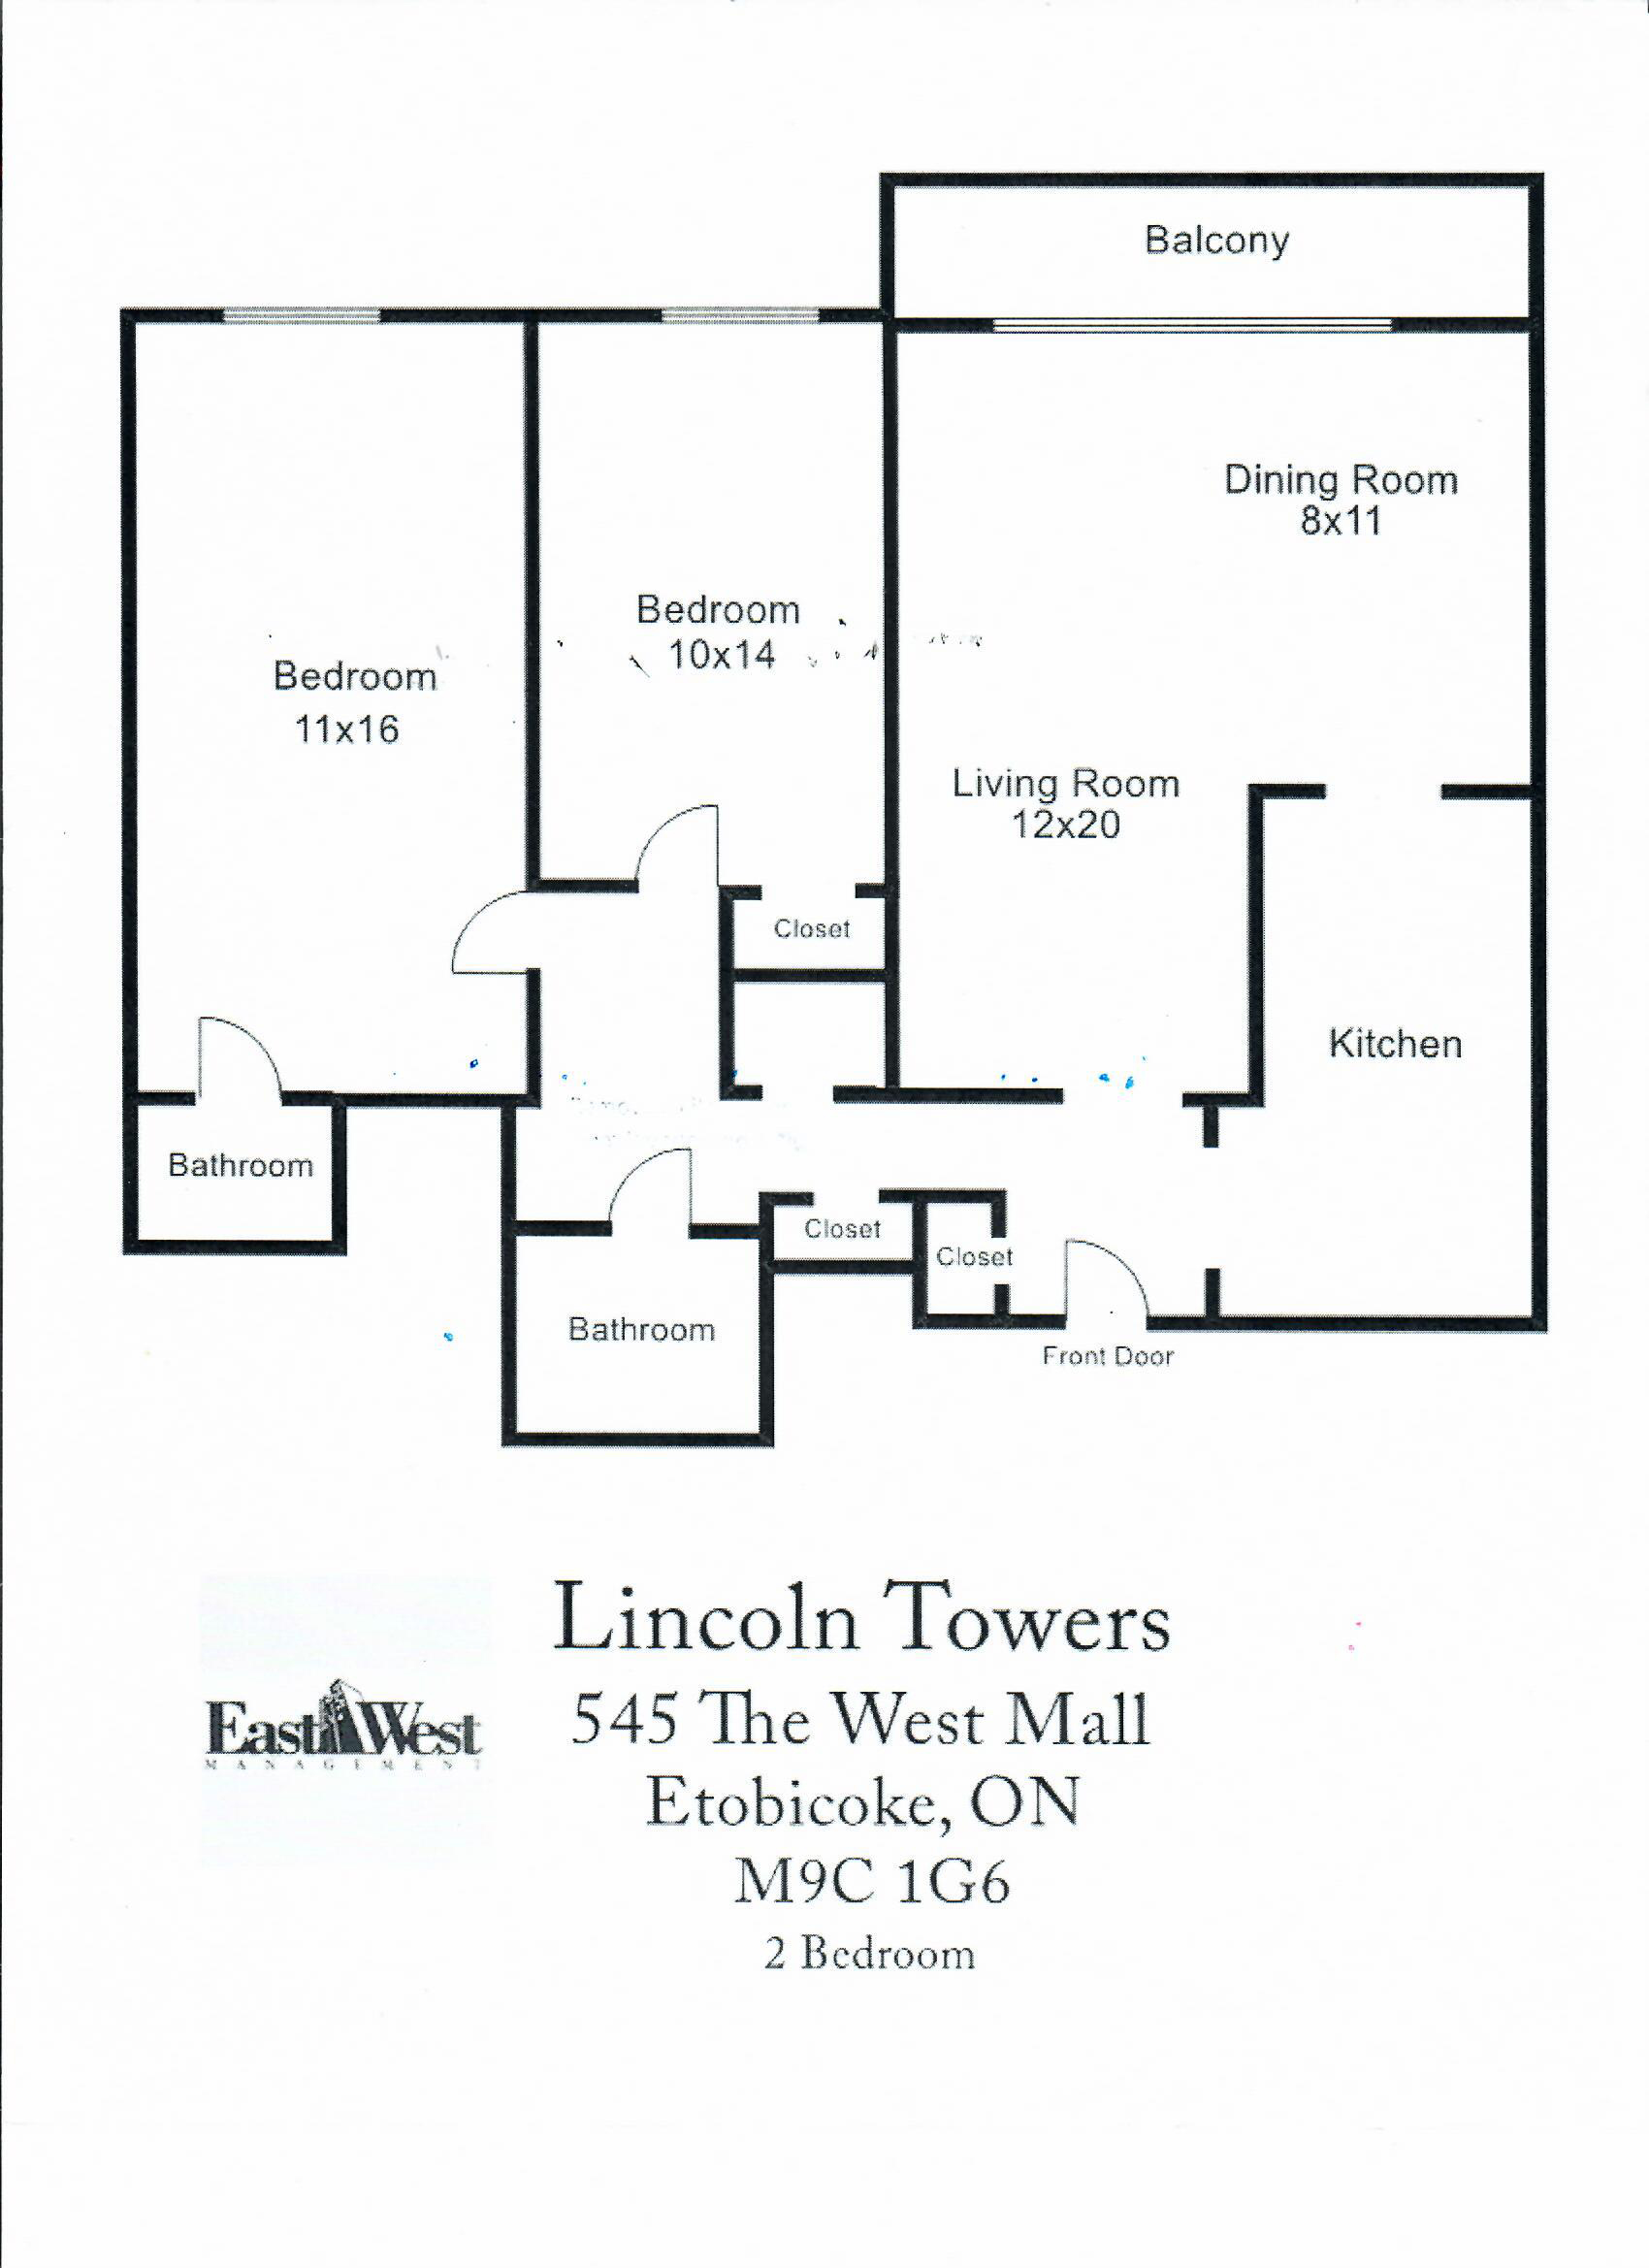 Lincoln Towers